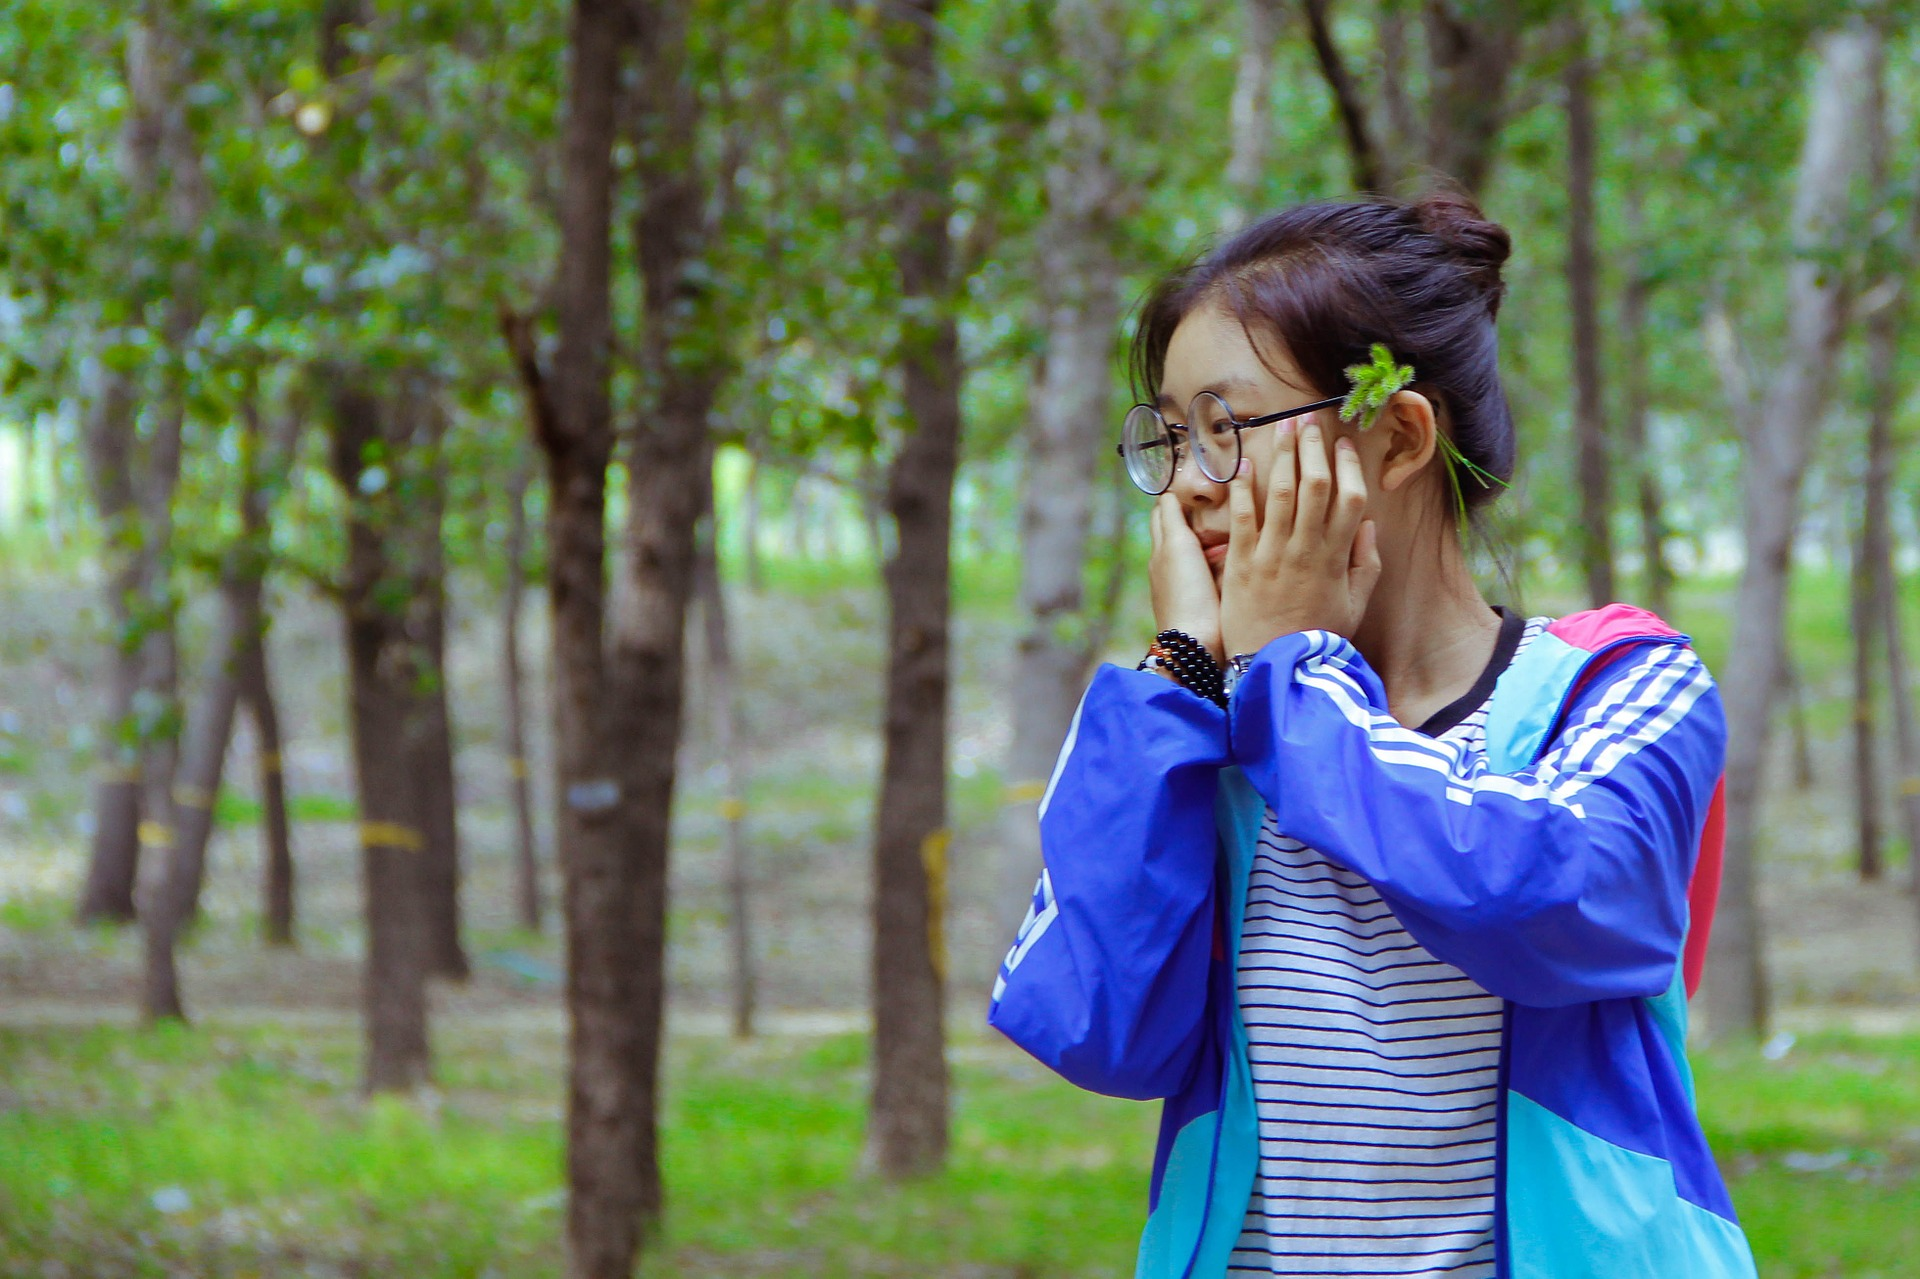 youth-1161906_1920